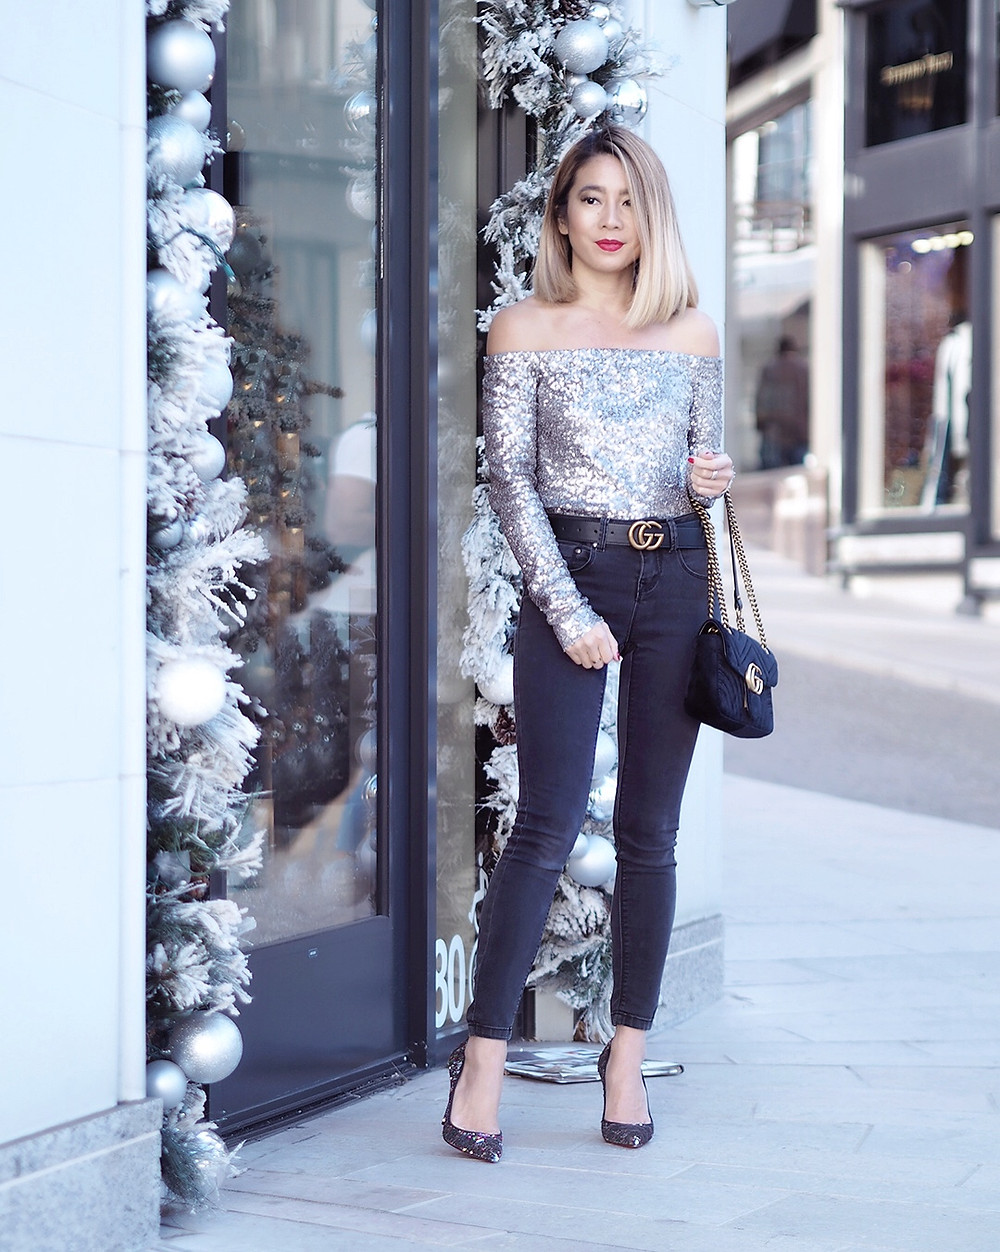 3 Ways to Sparkle on New Year's Eve | Lam in Louboutins